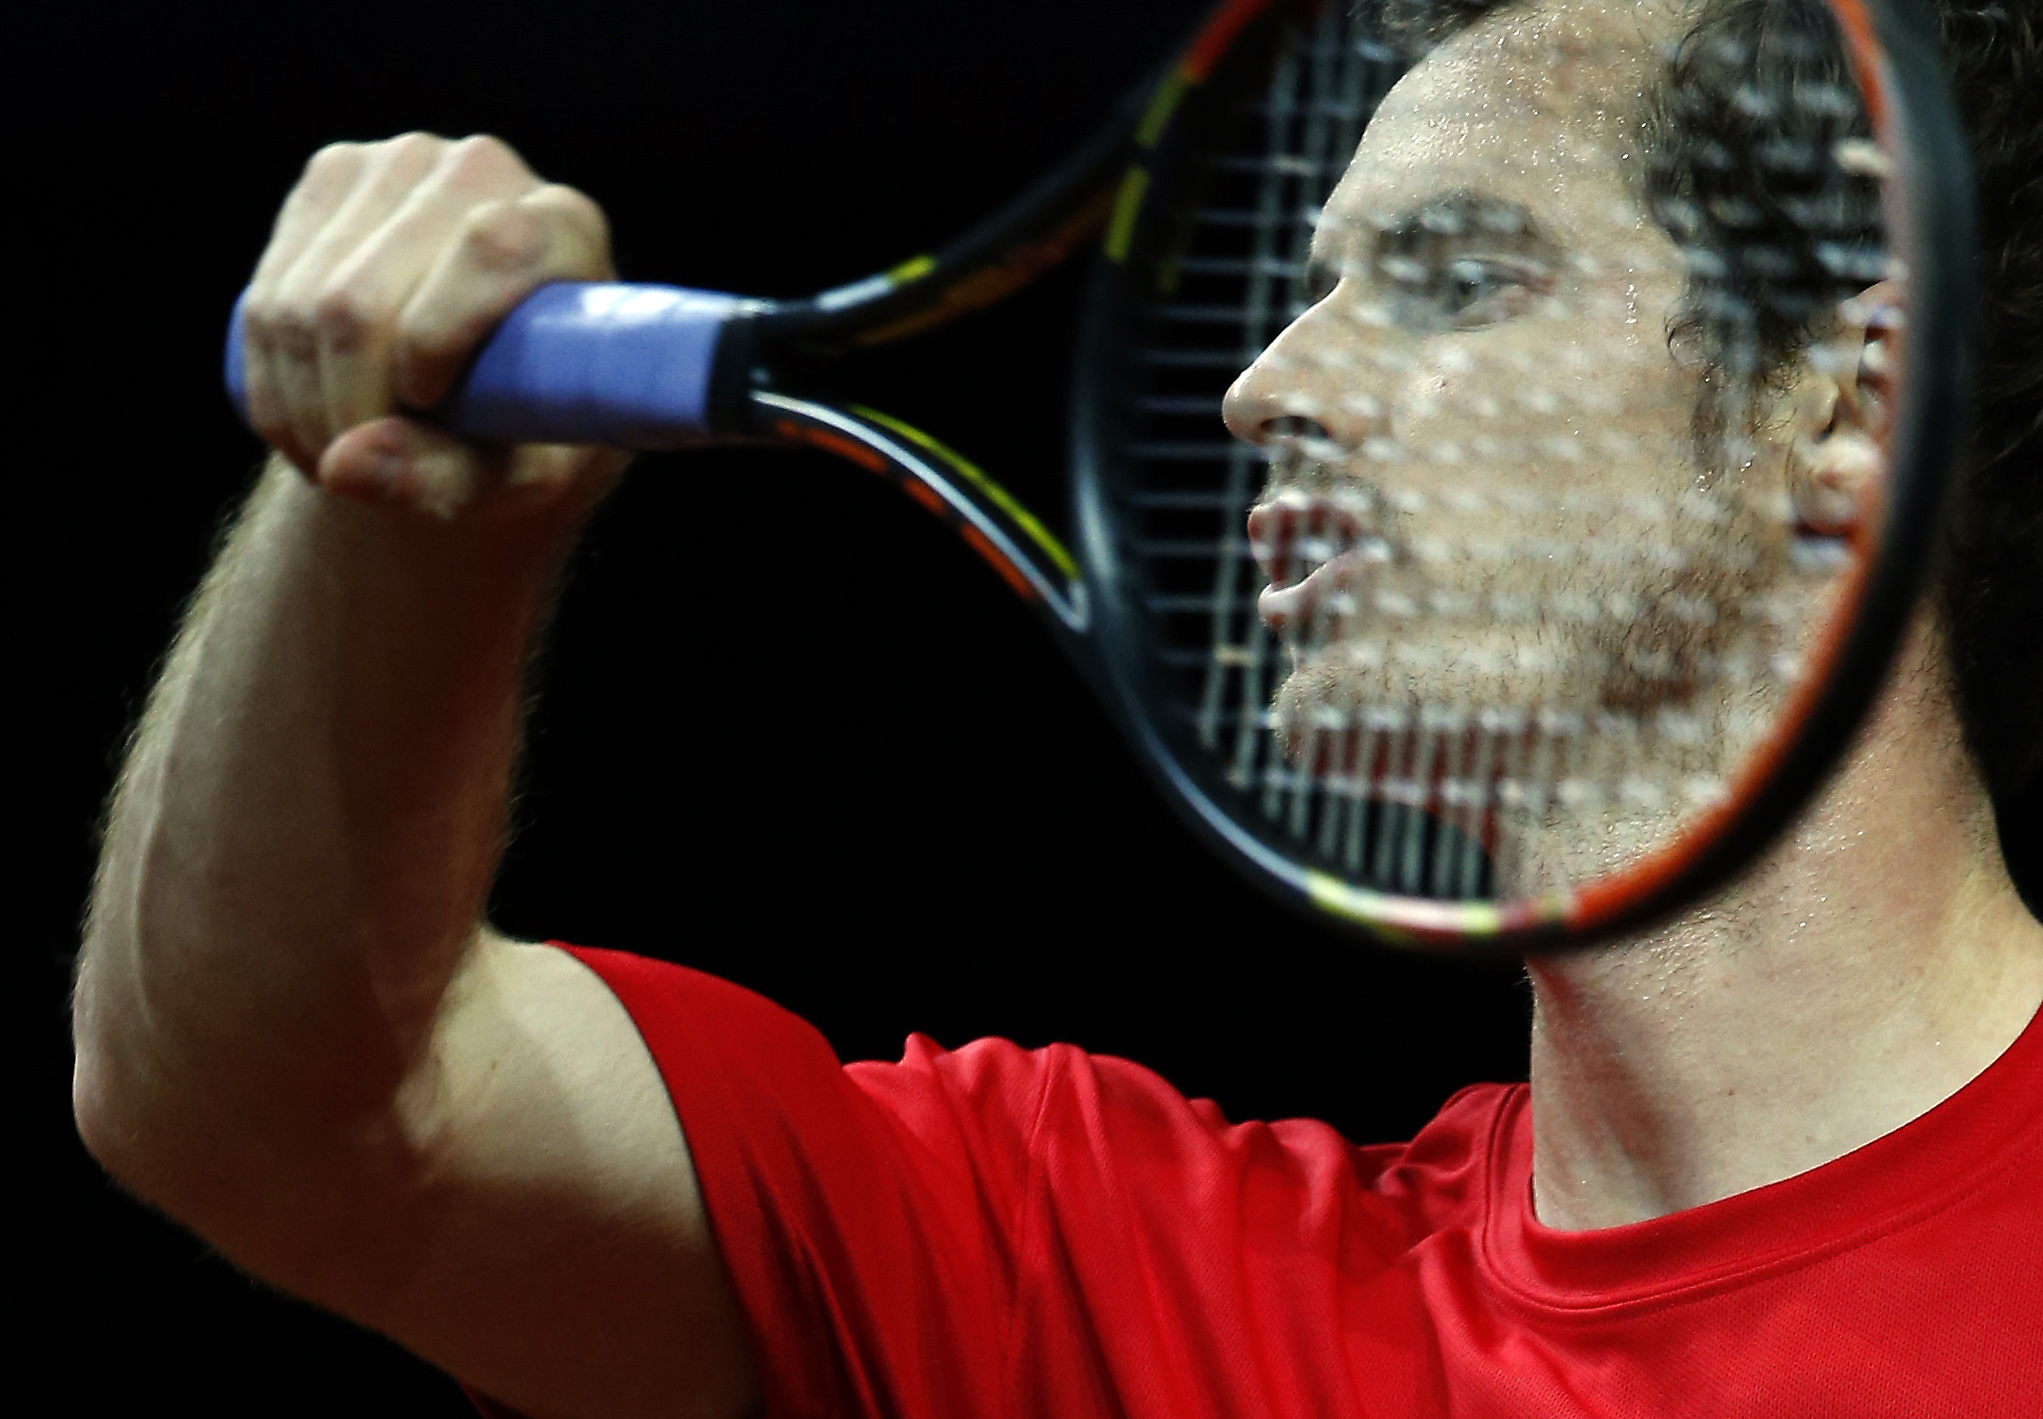 Britain's Andy Murray hits a return during a practice session ahead of the Davis Cup Final tennis match between Belgium and Britain, in Ghent, Belgium, Tuesday, Nov. 24, 2015. The final starts Friday and runs till Sunday. (AP Photo/Alastair Grant)